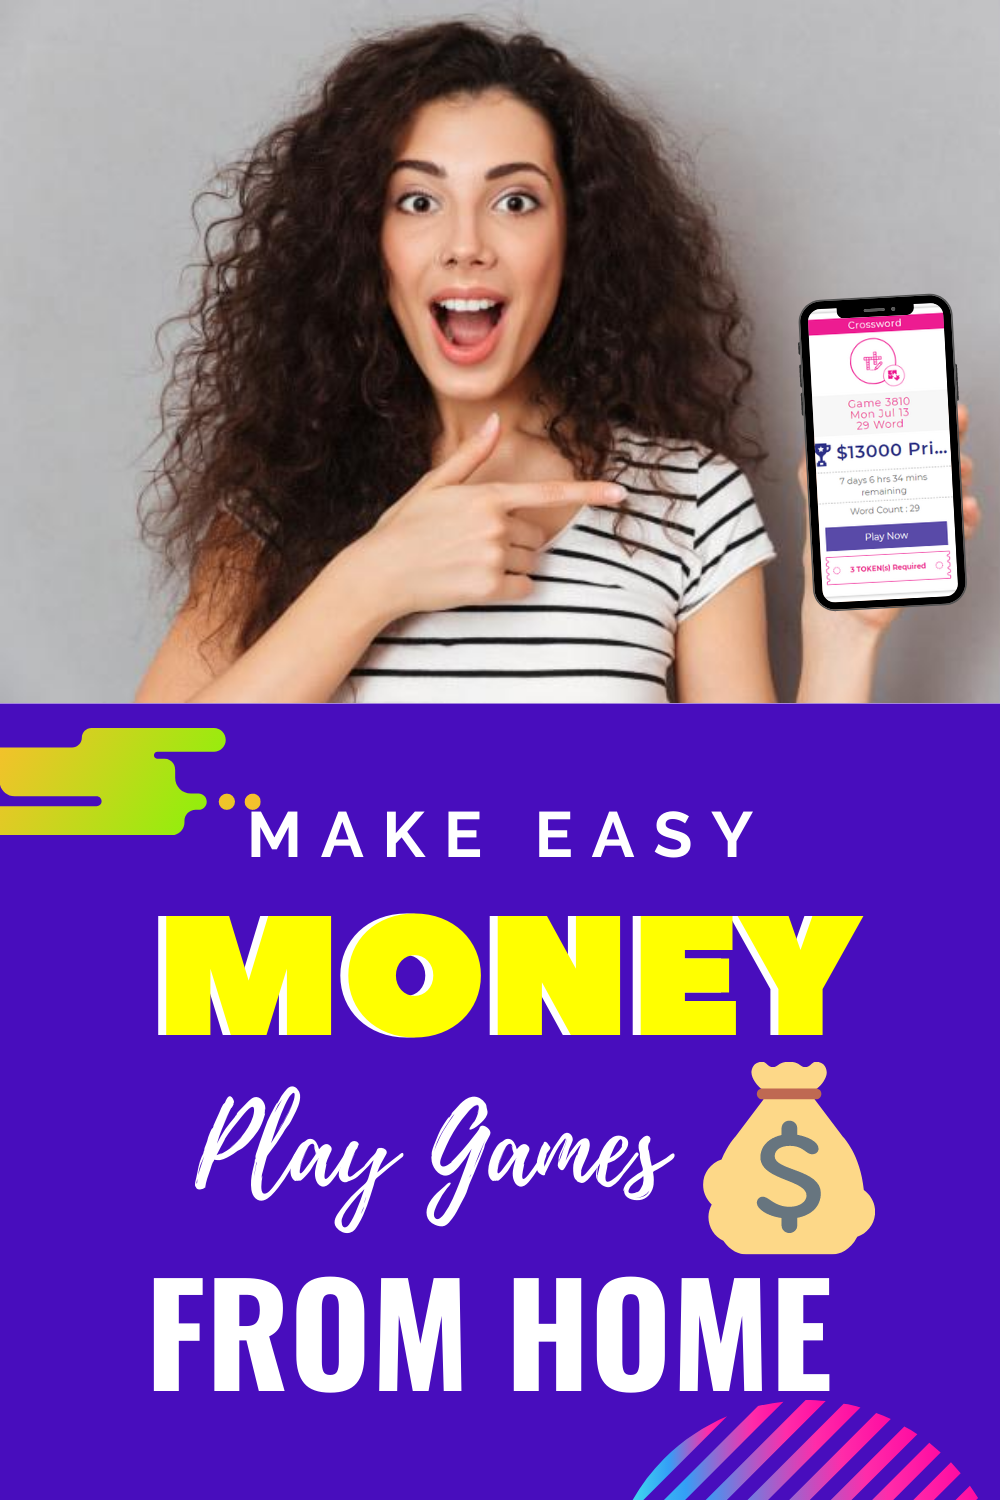 Win Cash By Playing Online Games For Free